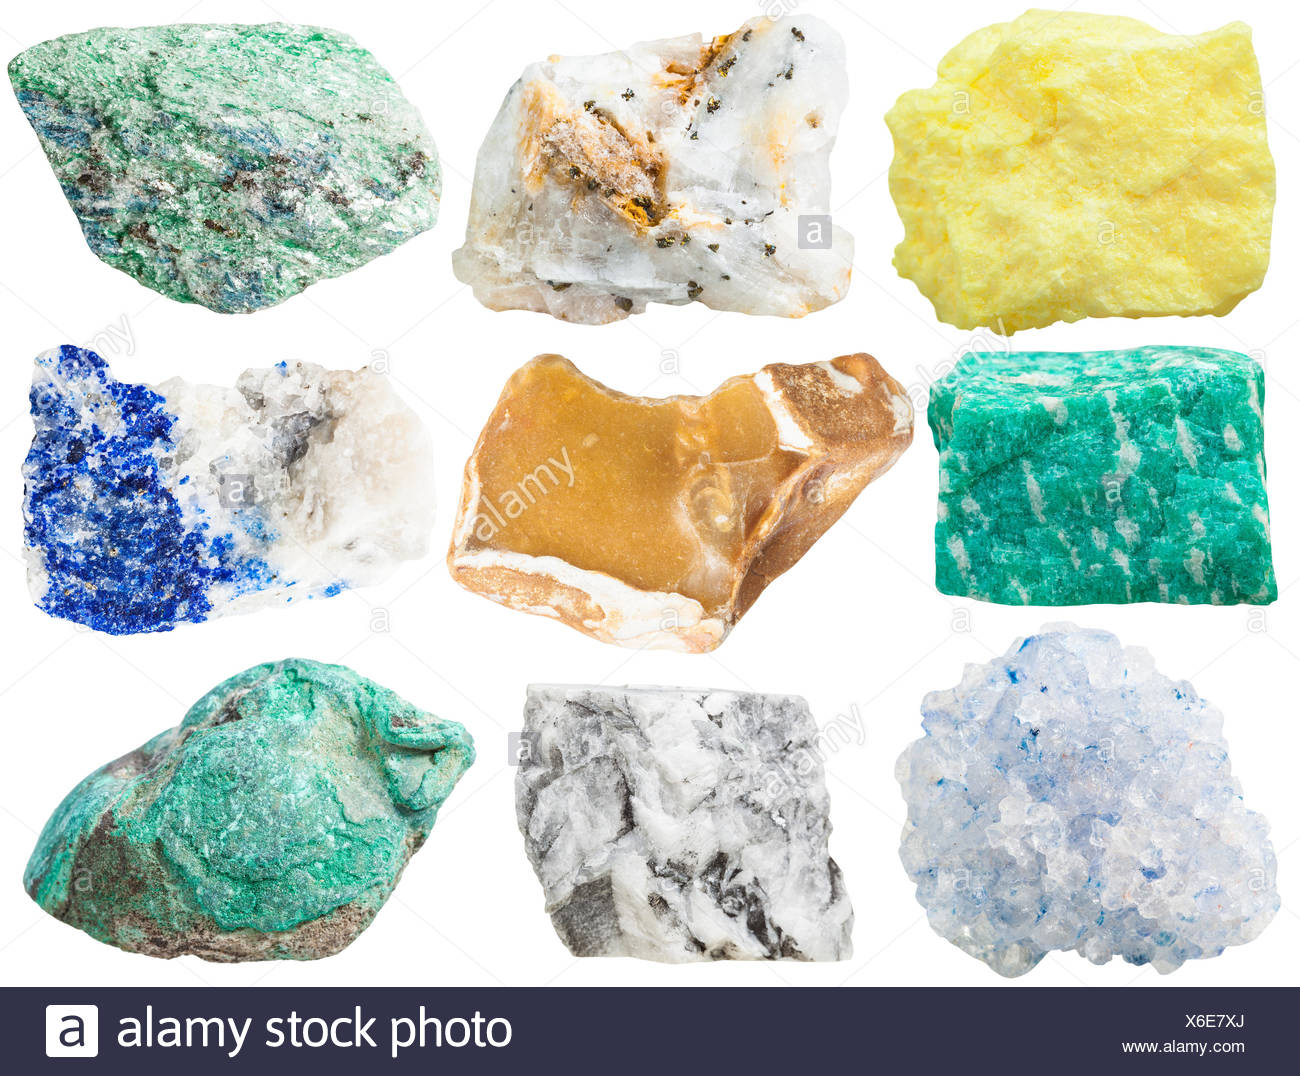 collection of different mineral rocks and stones - Stock Image